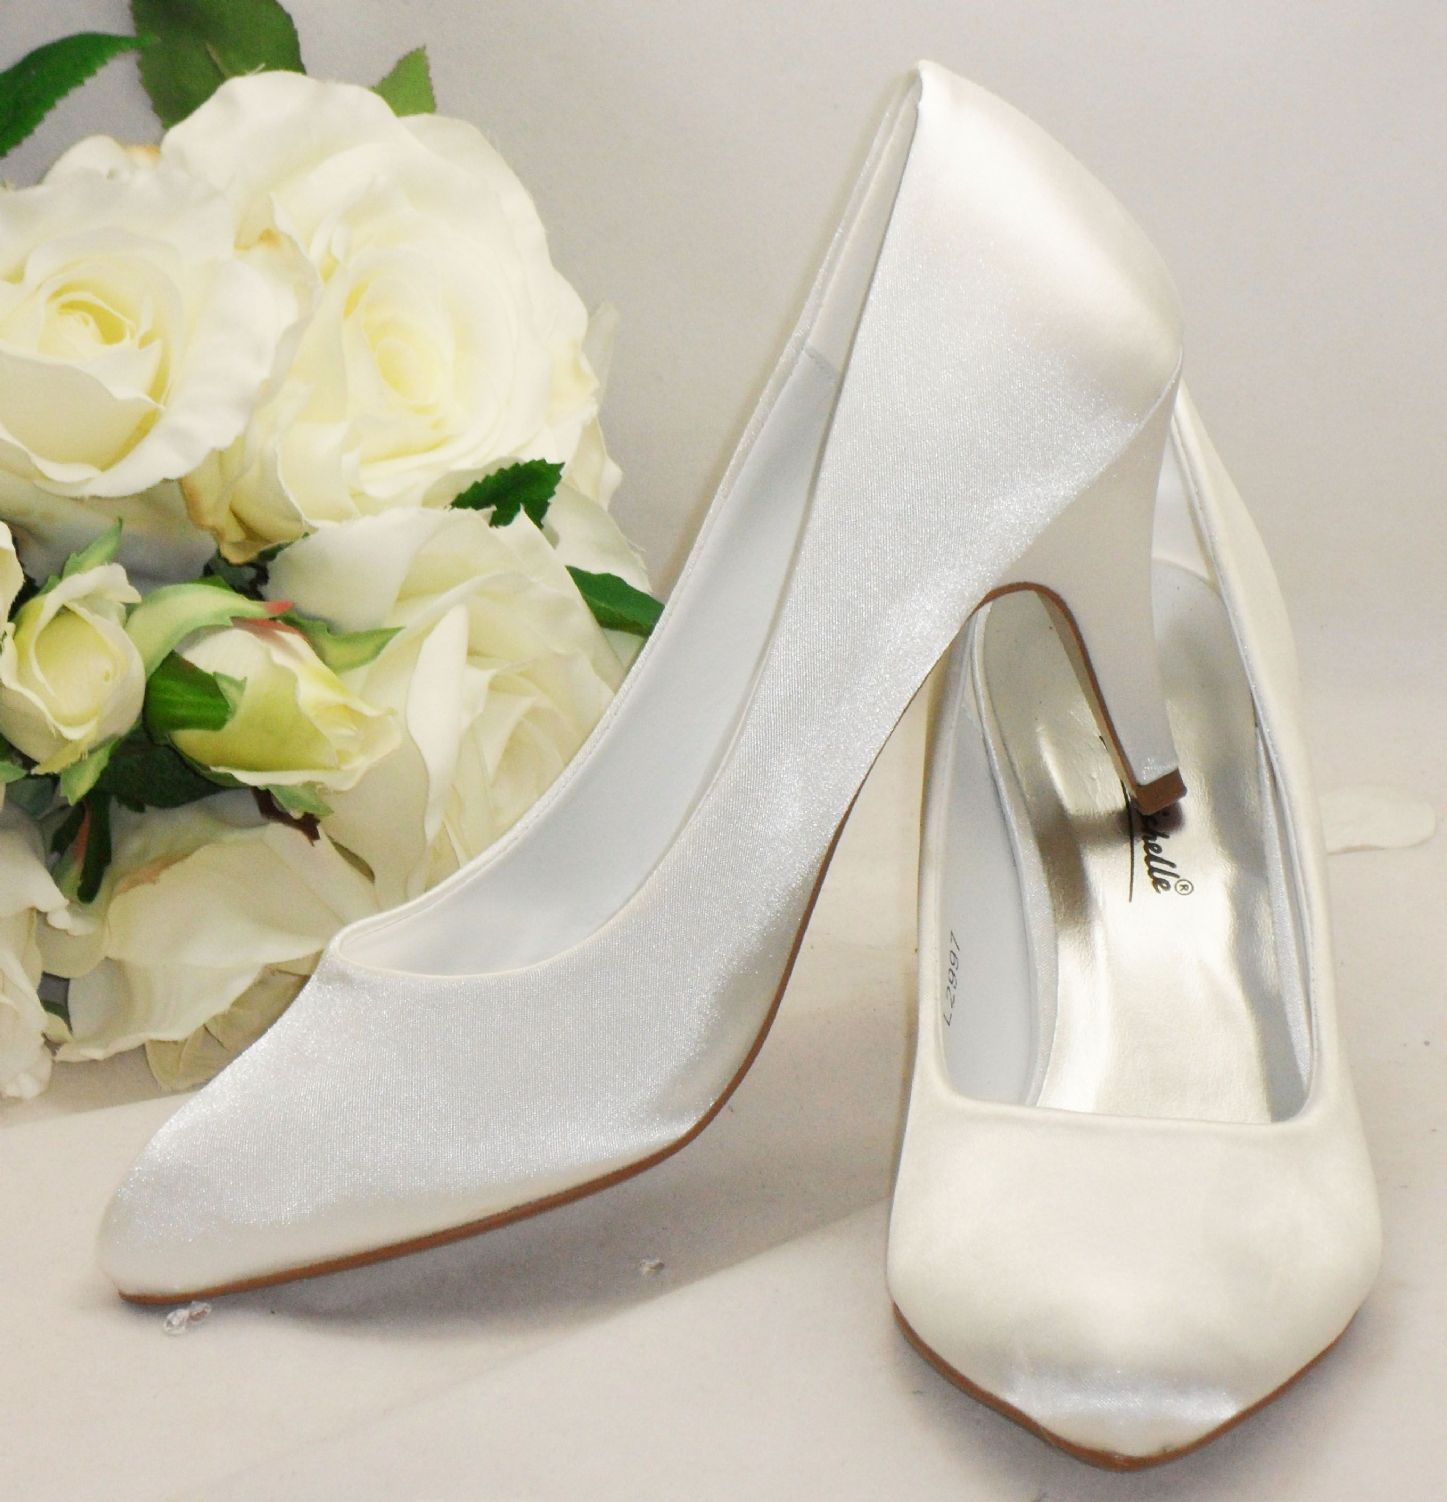 Fashion is life itself GET YOUR WEDDING SHOES RIGHT